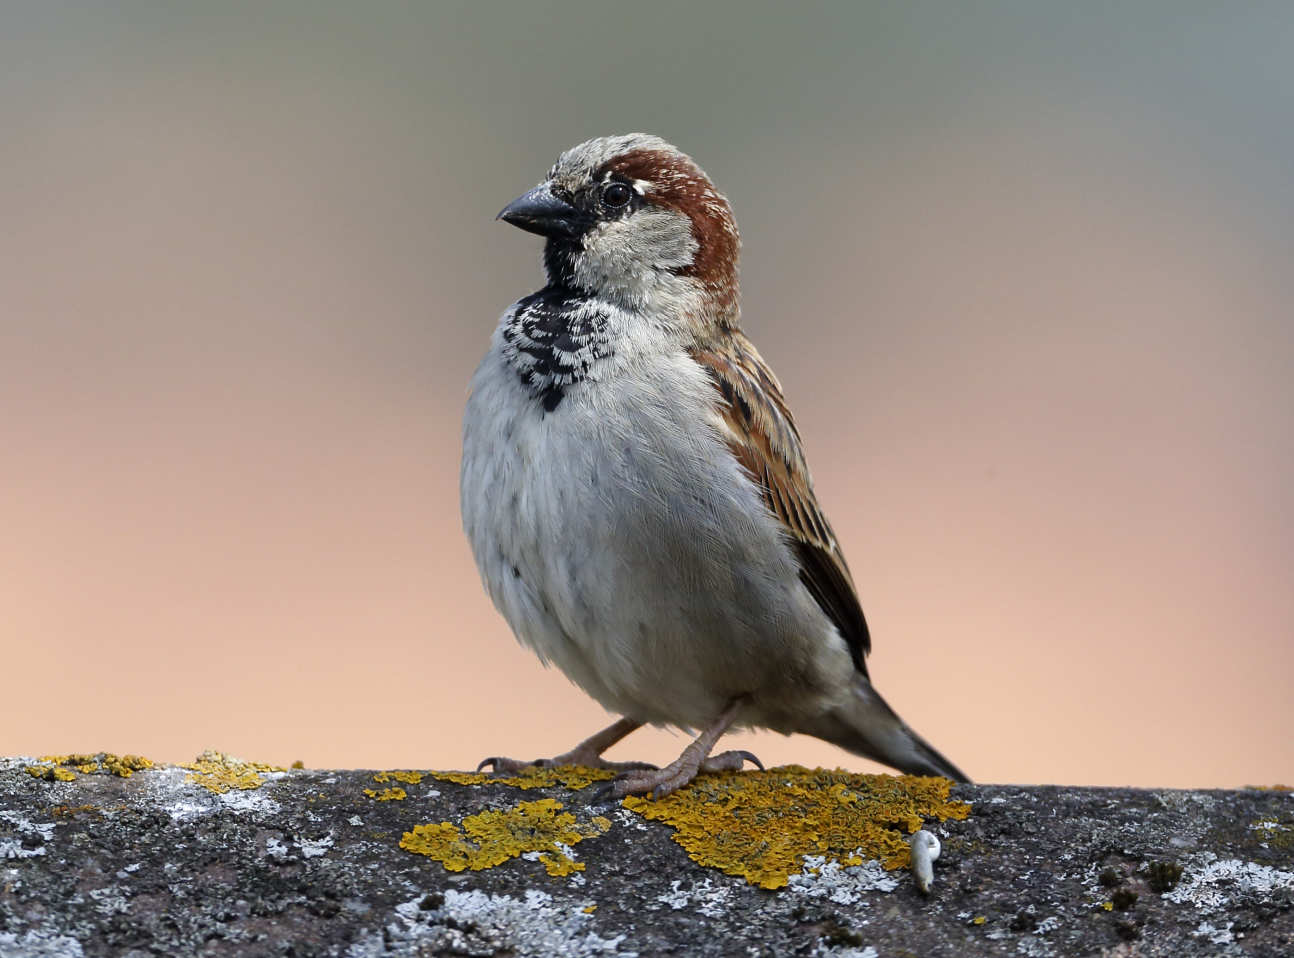 Male sparrow standing tall